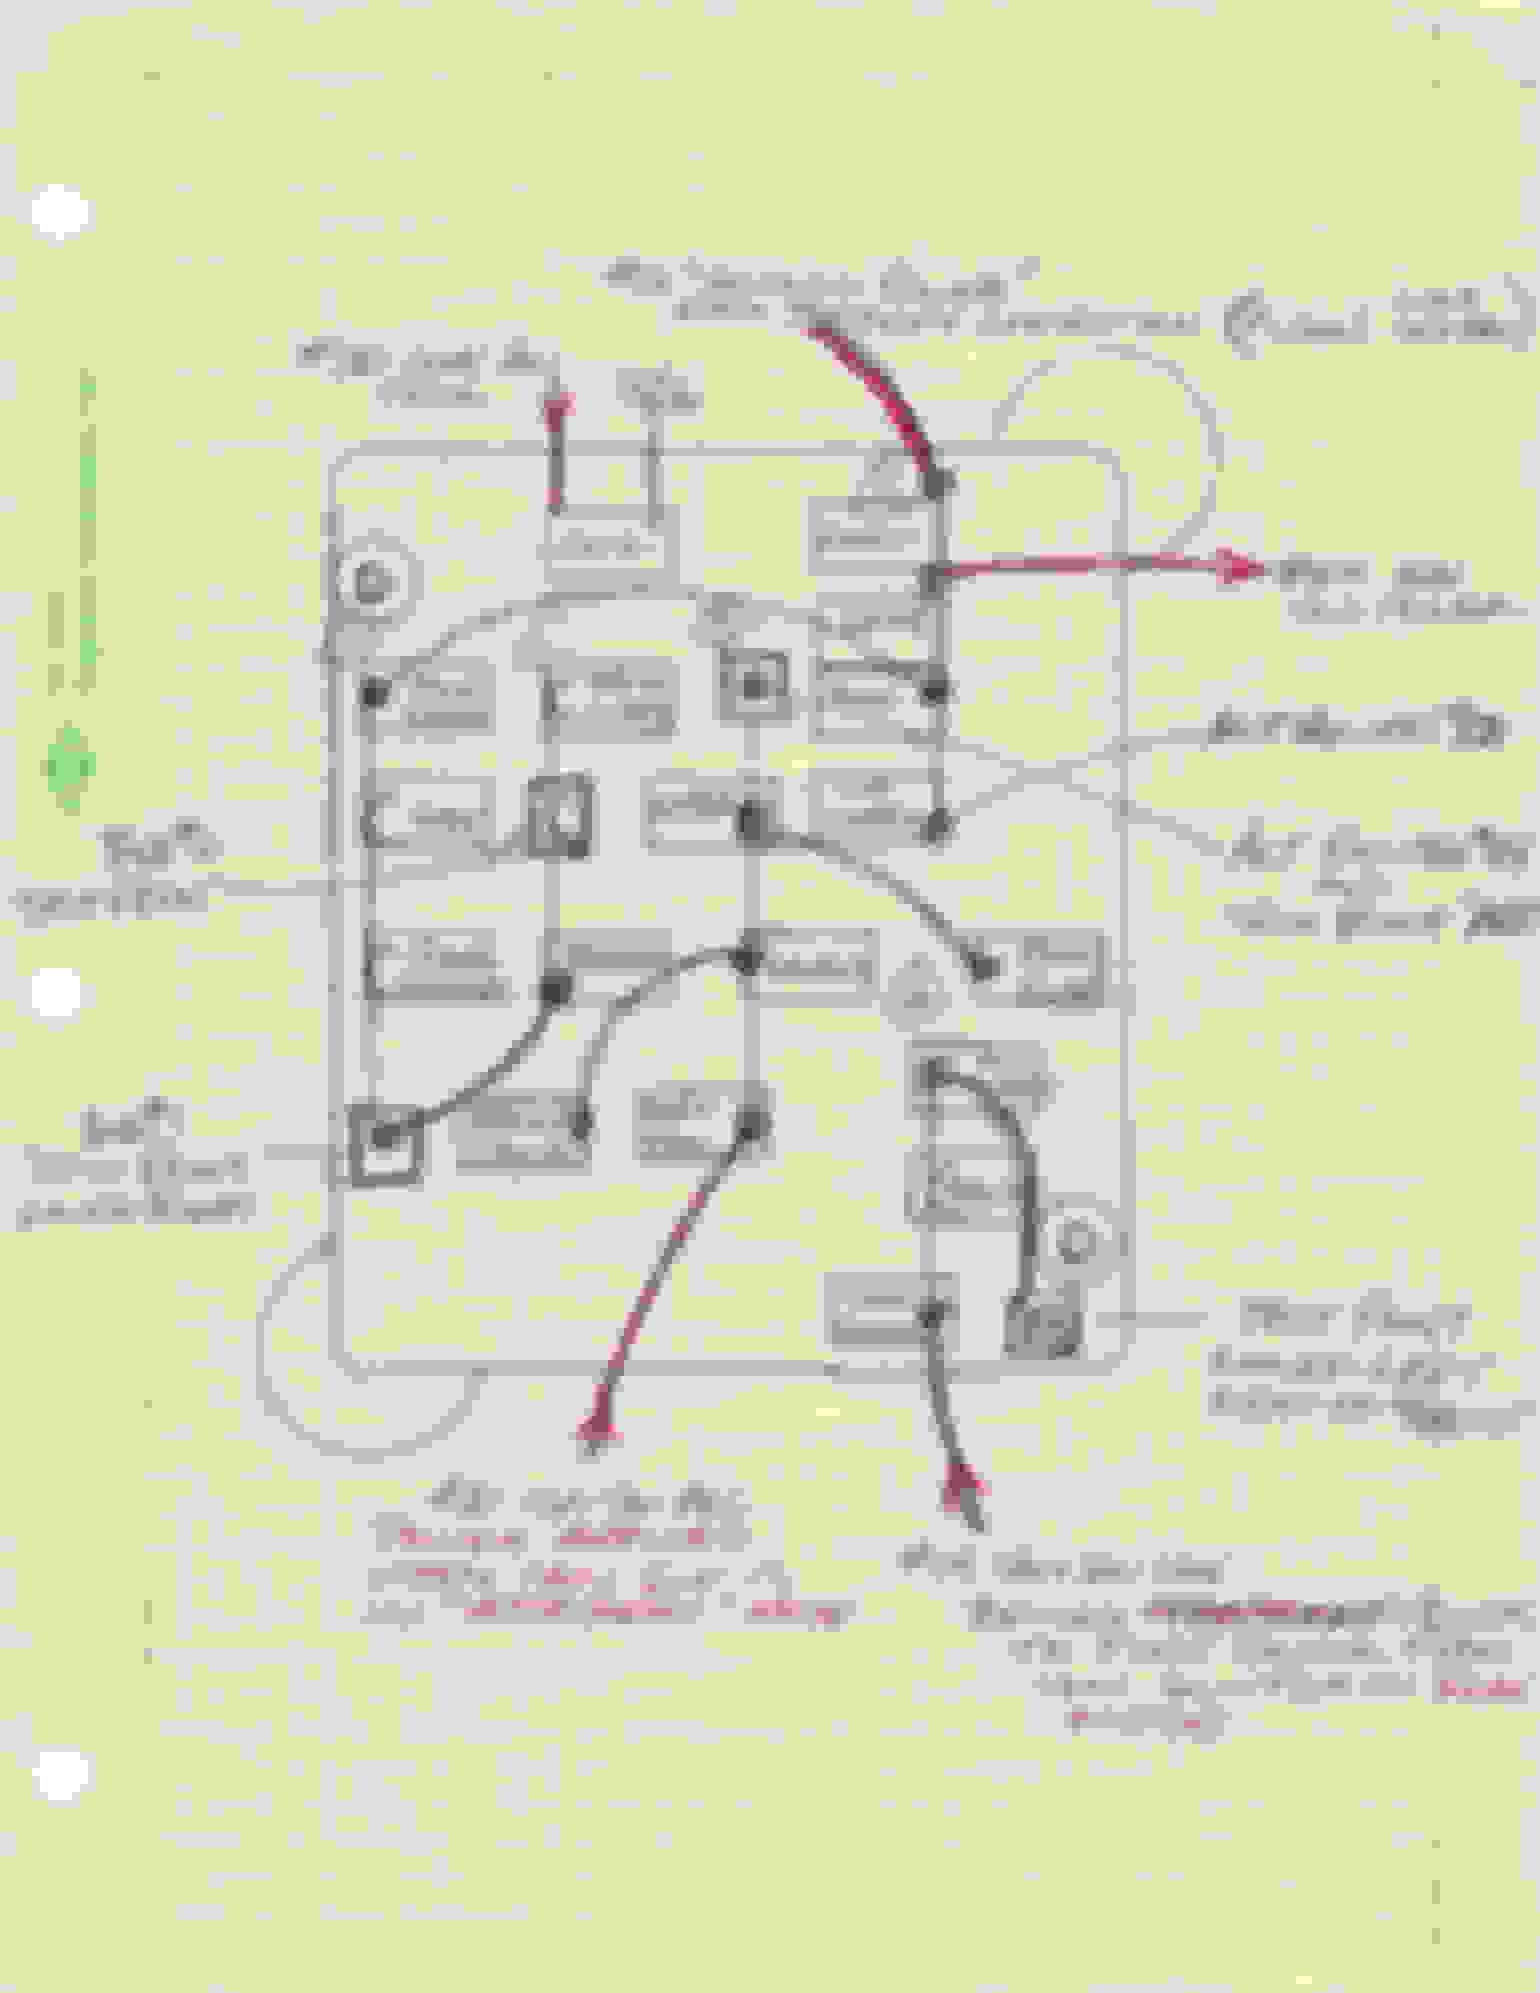 hight resolution of ez wiring fuse block electrical wiring diagram ez wiring fuse block wiring diagram e z wiring harness